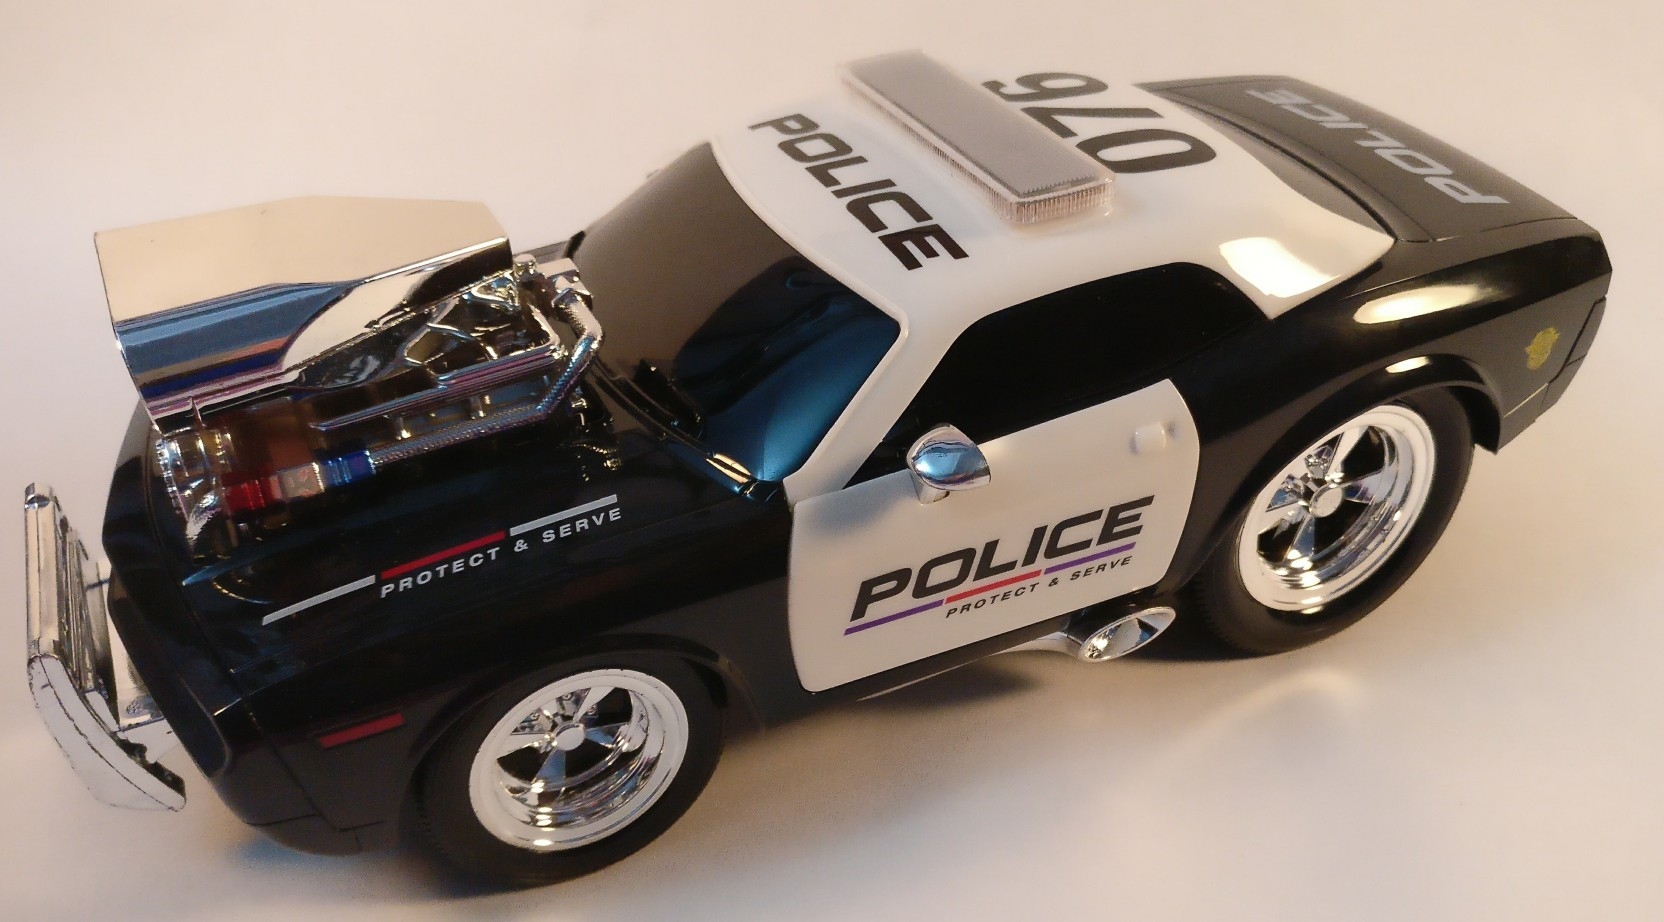 GlobalityCo Remote Control Police Car with Real engine Sound